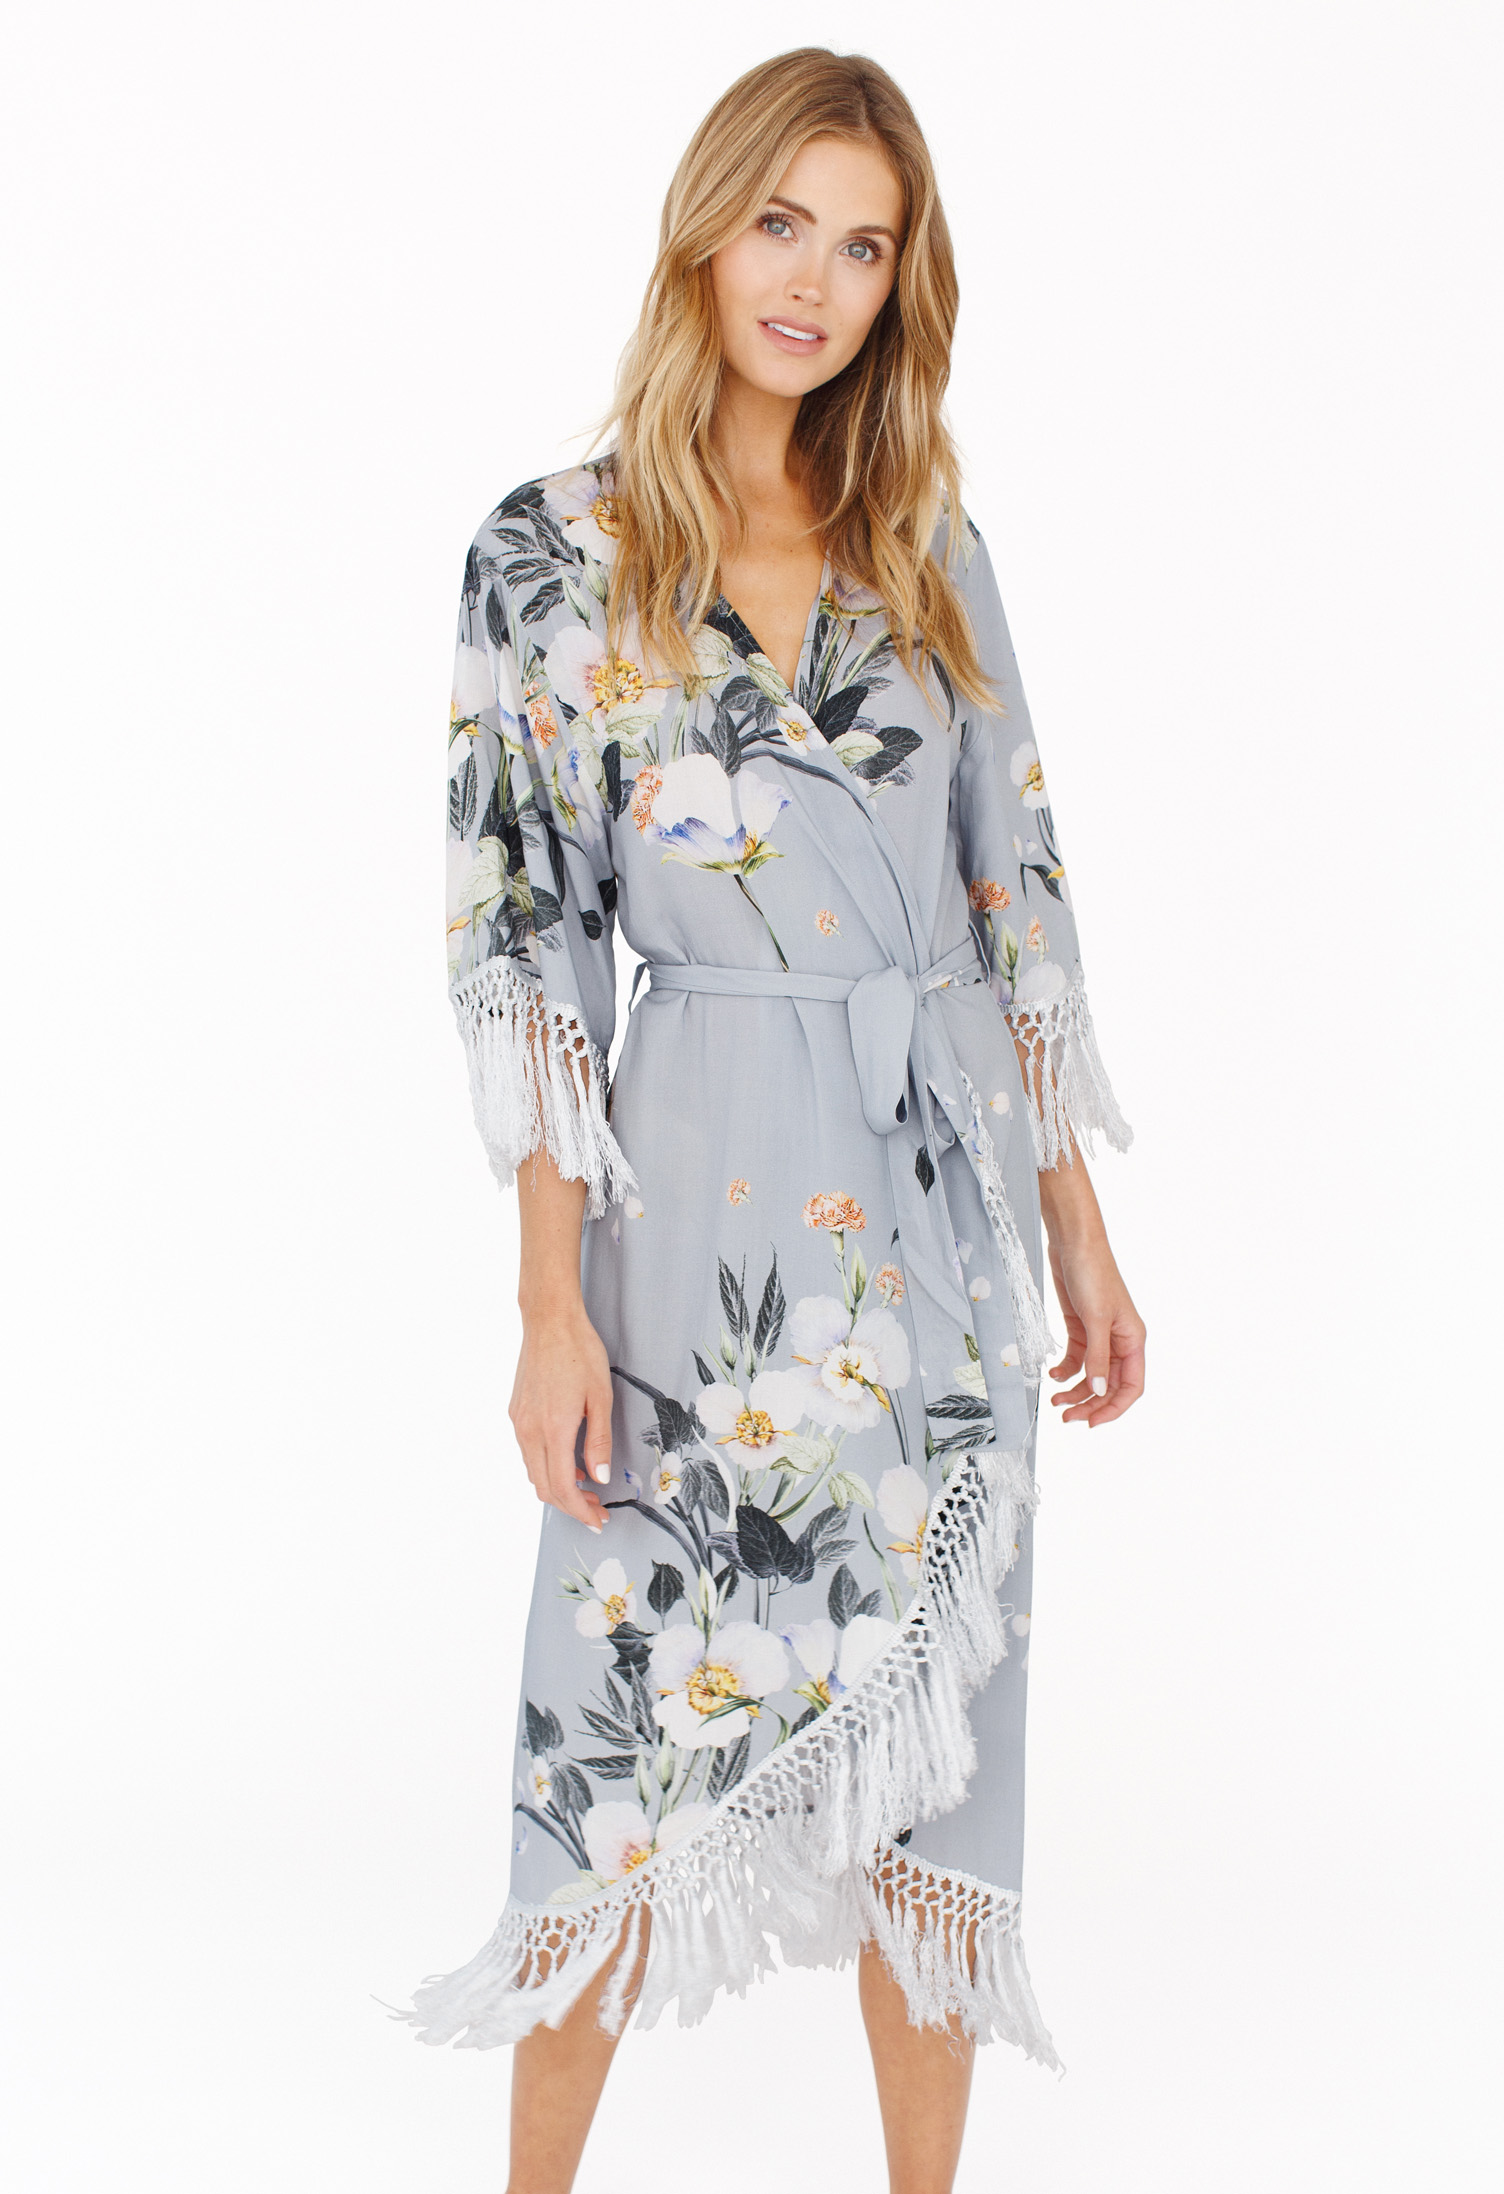 GWSxPPS Hibiscus Midi Robe in Lovestoned